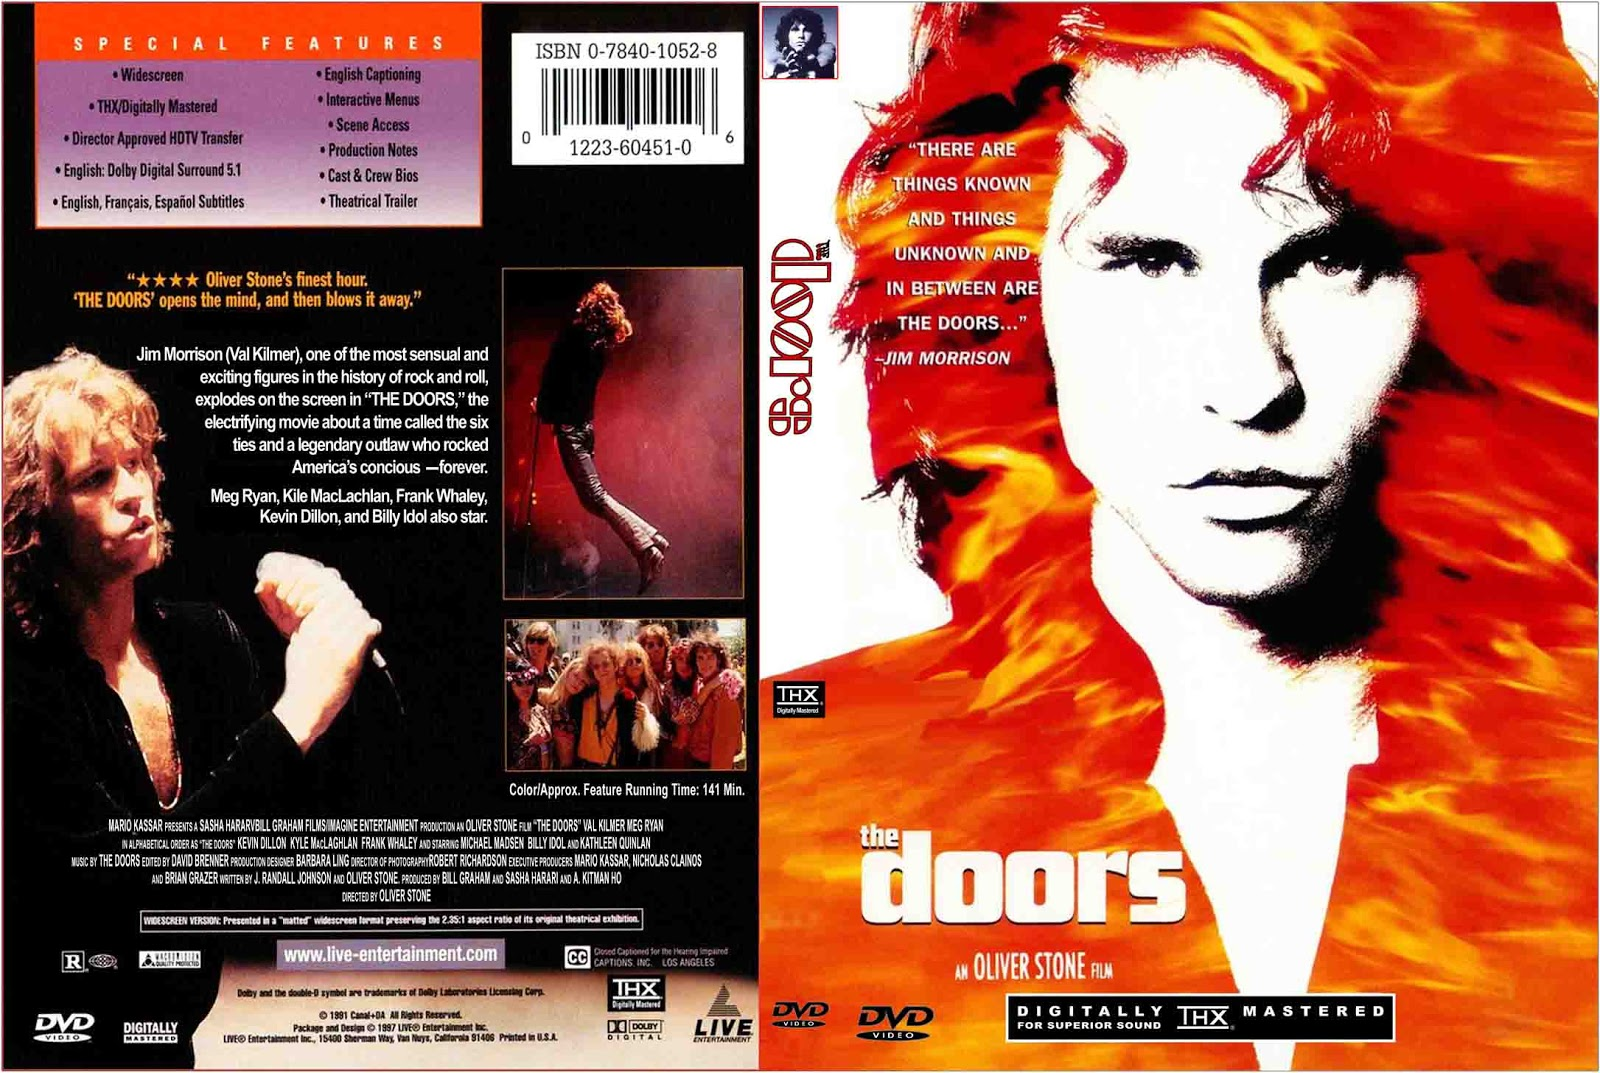 The Doors 1991 (directed by Oliver Stones) The film portrays Morrison as the larger-than-life icon of 1960s rock and roll counterculture ...  sc 1 st  youdiscoll & YOUDISCOLL: MOVIE: The Doors 1991 (Oliver Stones)